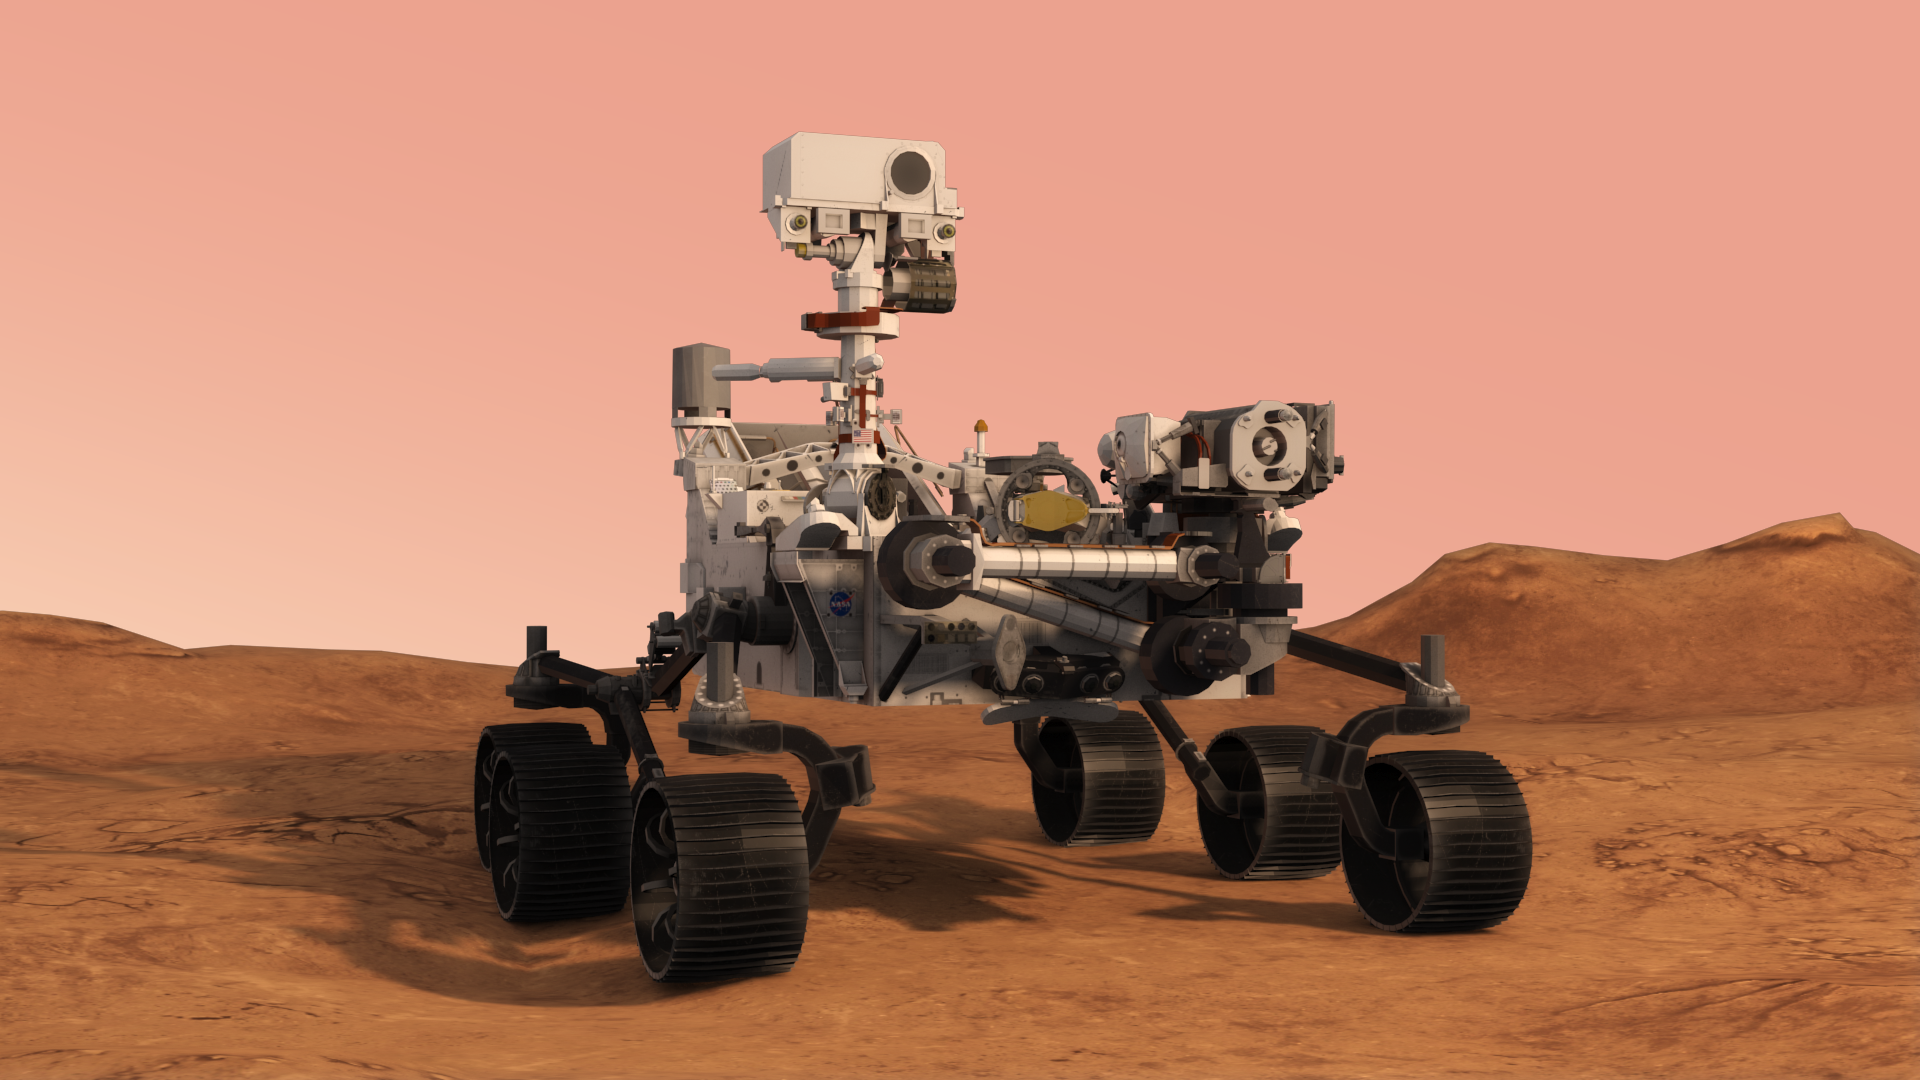 Perseverance will get you anywhere : After 300-million-mile journey, NASA s Mars rover shares Twitter updates – sort of